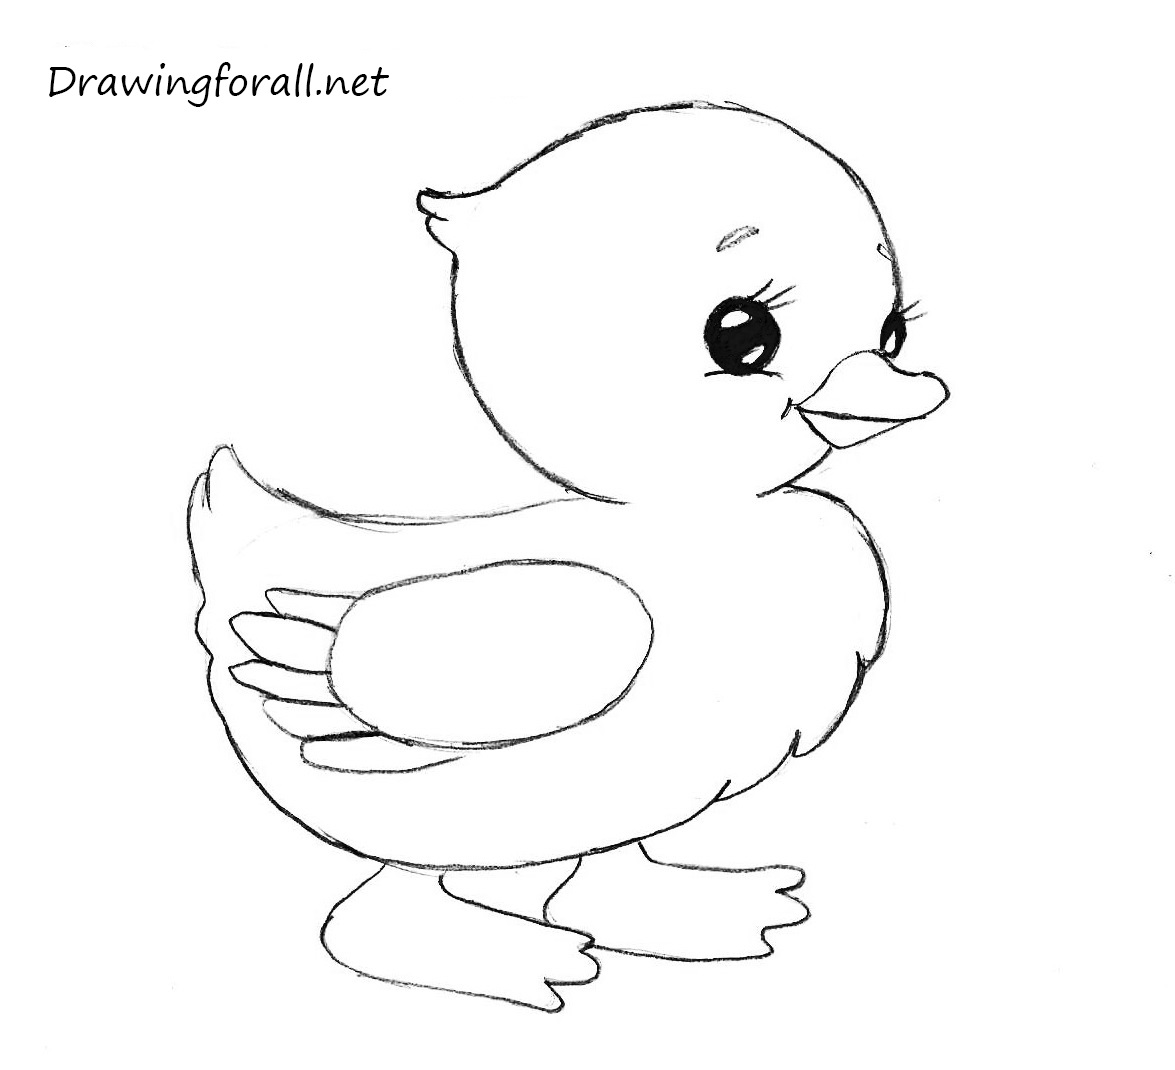 how to draw a chick how to draw a chicken drawingforallnet chick to a draw how